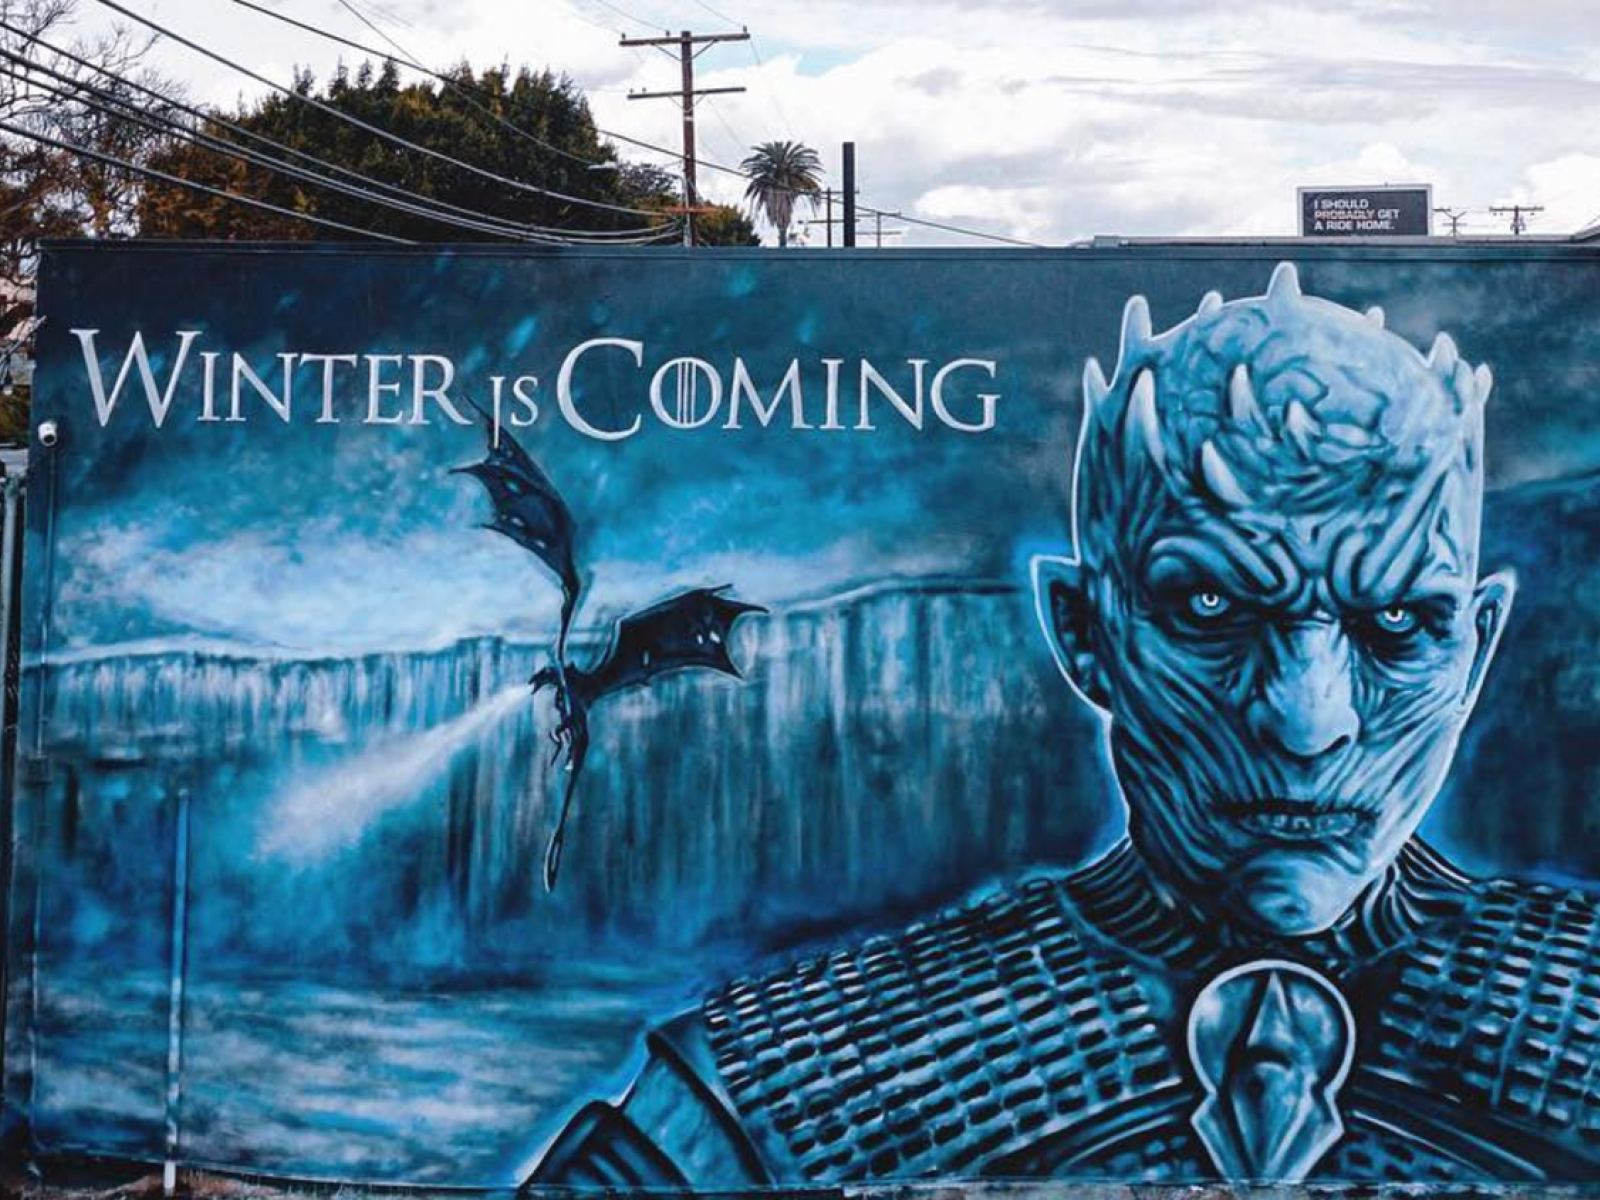 fd67e508993a Game of Thrones Night King mural by Jonas Never at Brennan's | Photo:  @never1959, Instagram